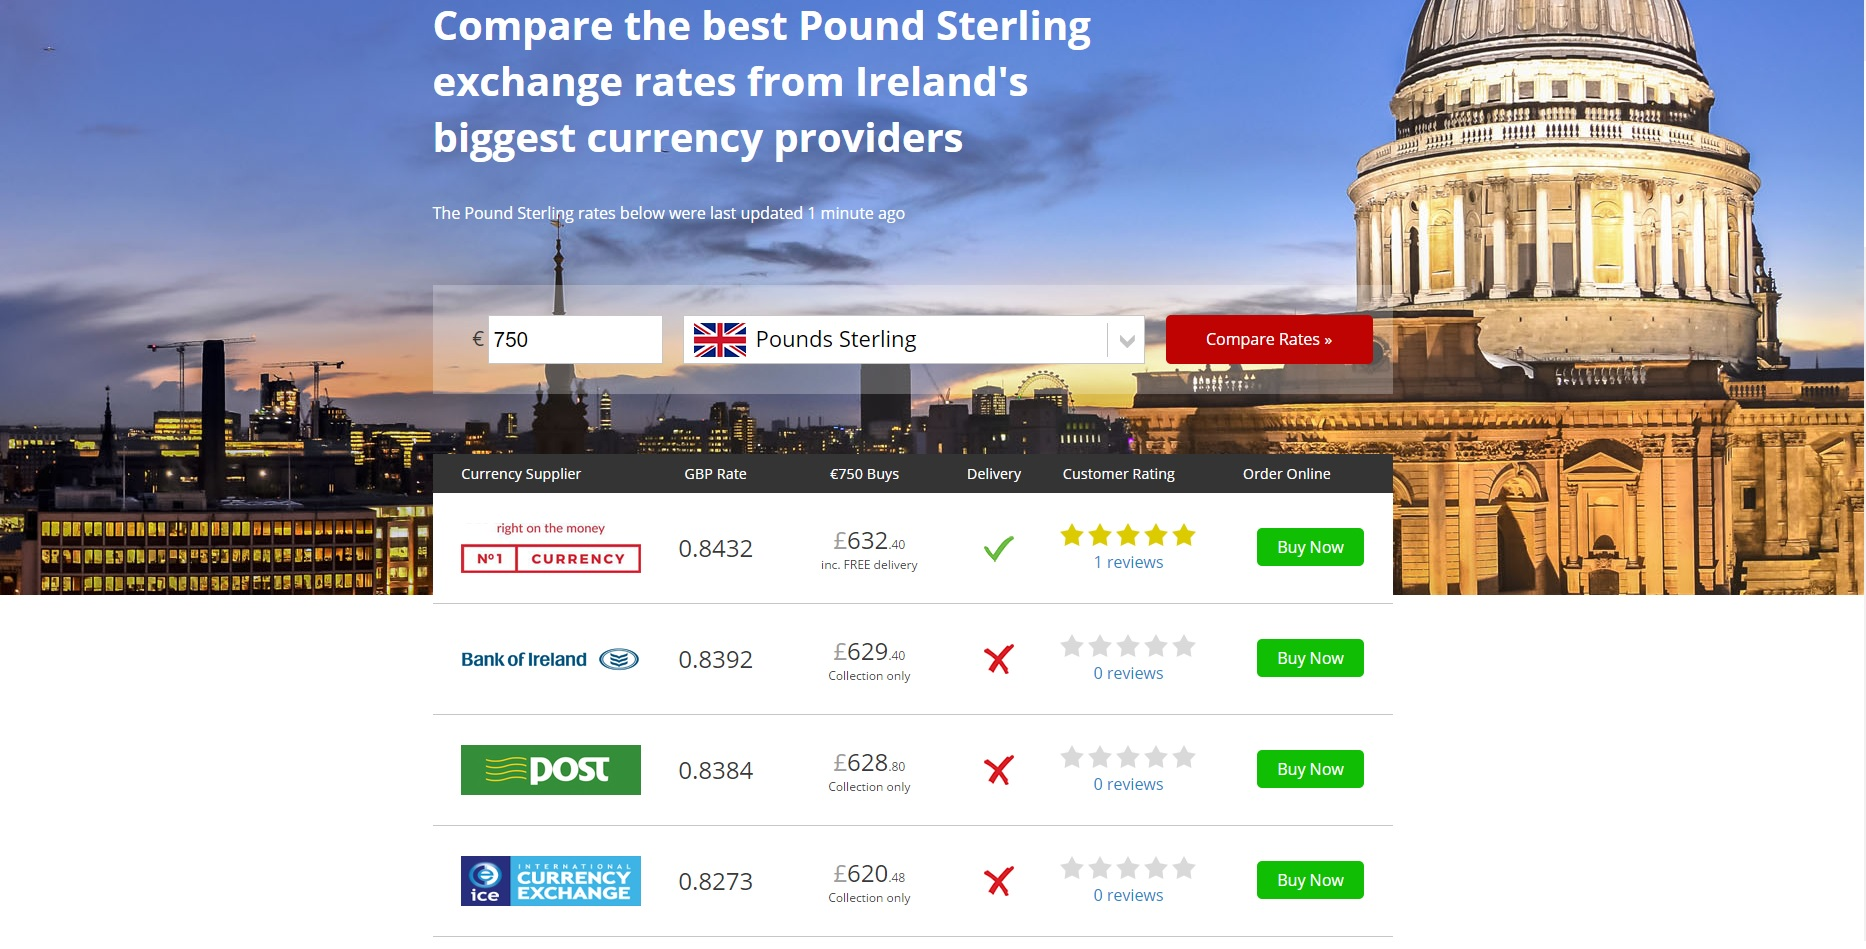 compare-holiday-money-launches-in-ireland-euro-to-sterling-exchange-rate-and-currency-suppliers